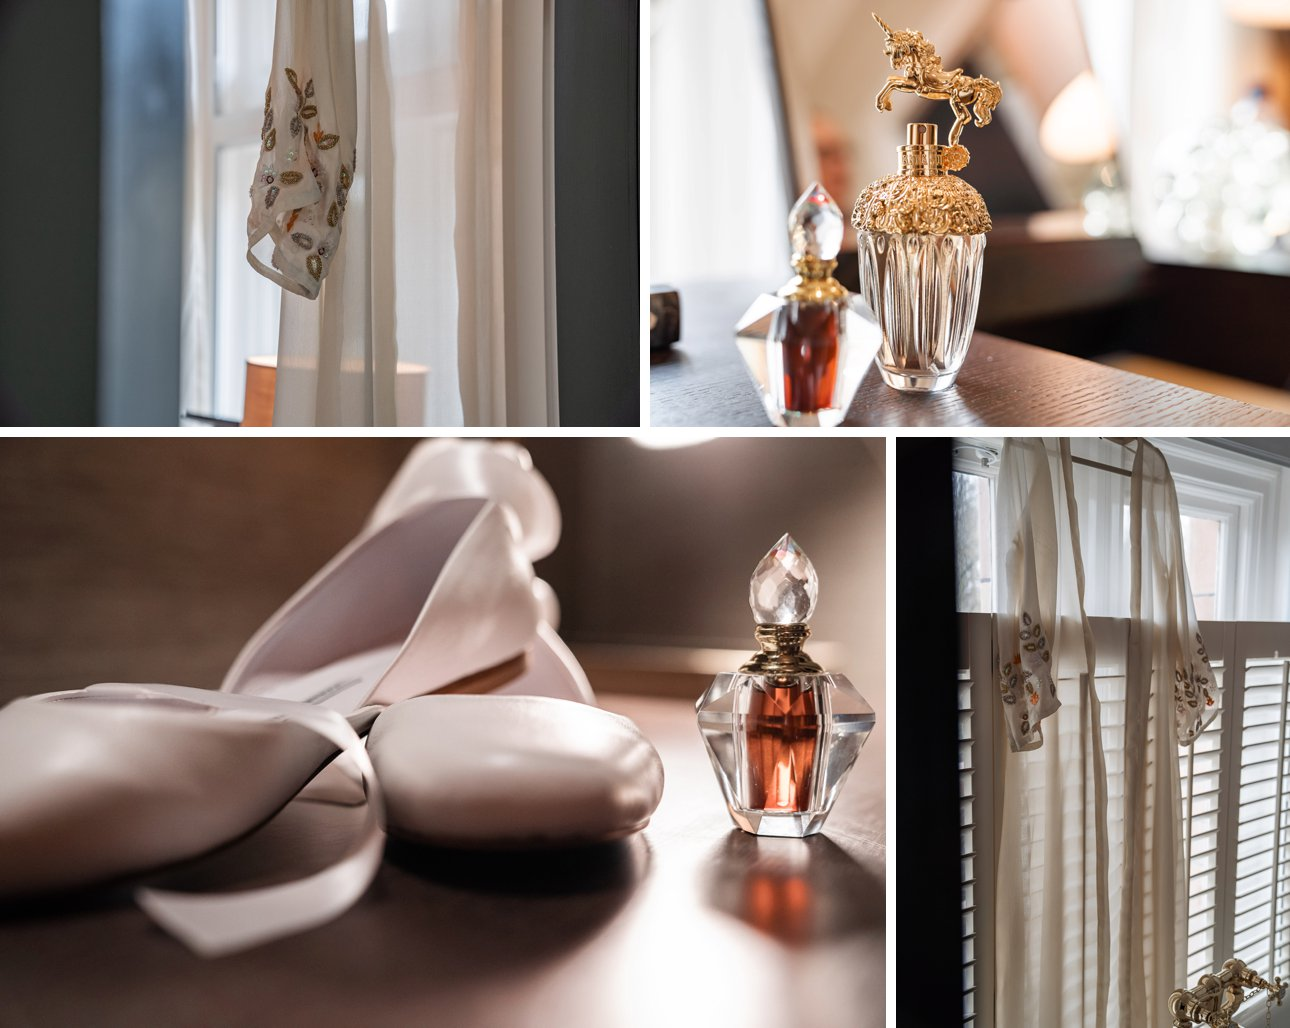 Details from a Kimpton Fitzroy London wedding including white ballet flats with ribbons and perfume.